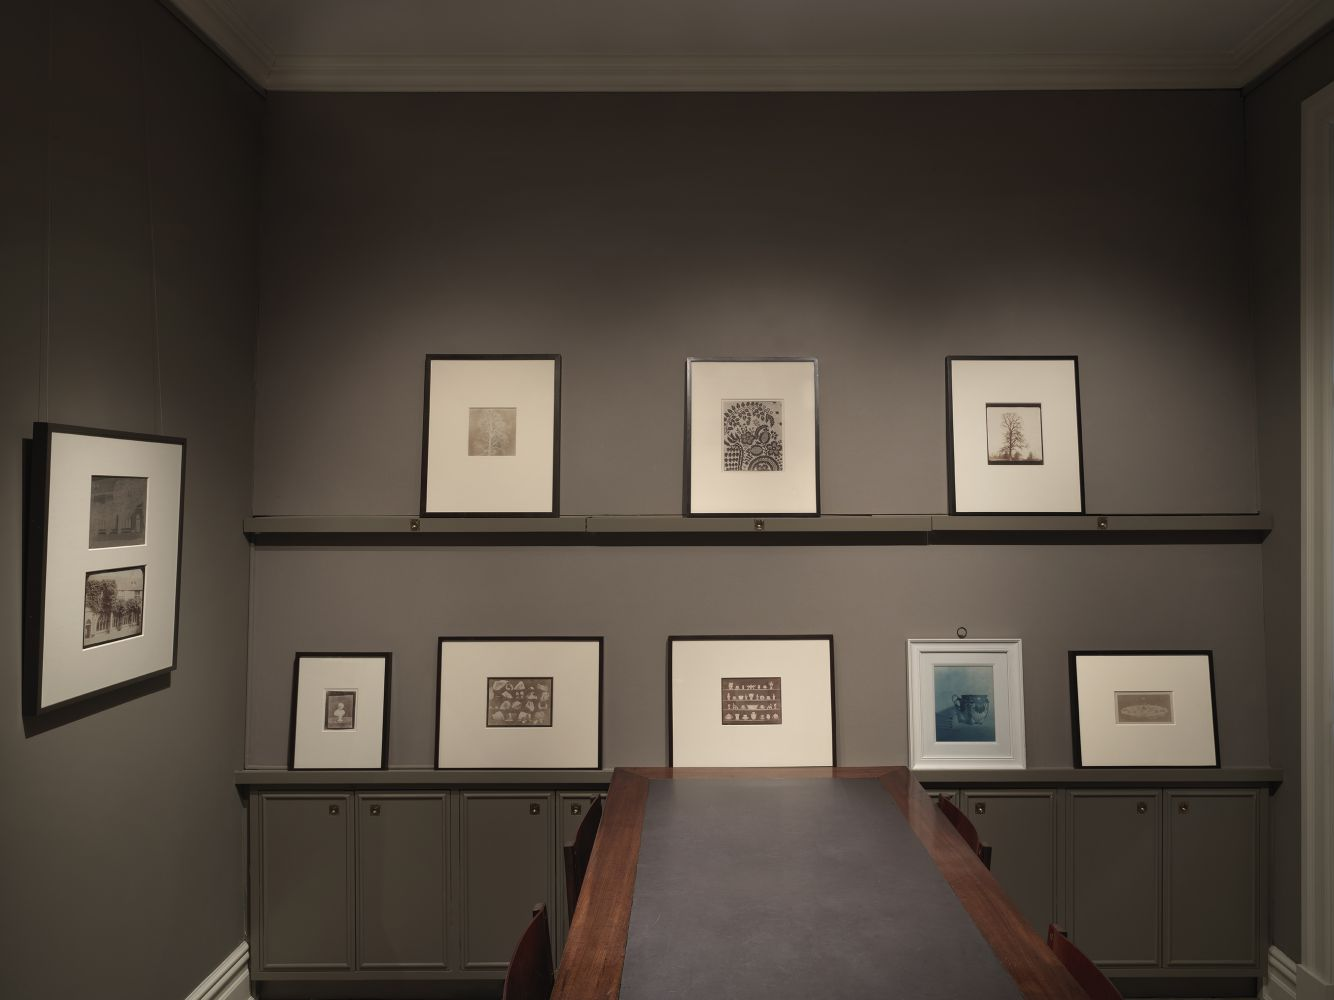 Lacock Abbey: A Birthplace of Photography on Paper Exhibition Installation View